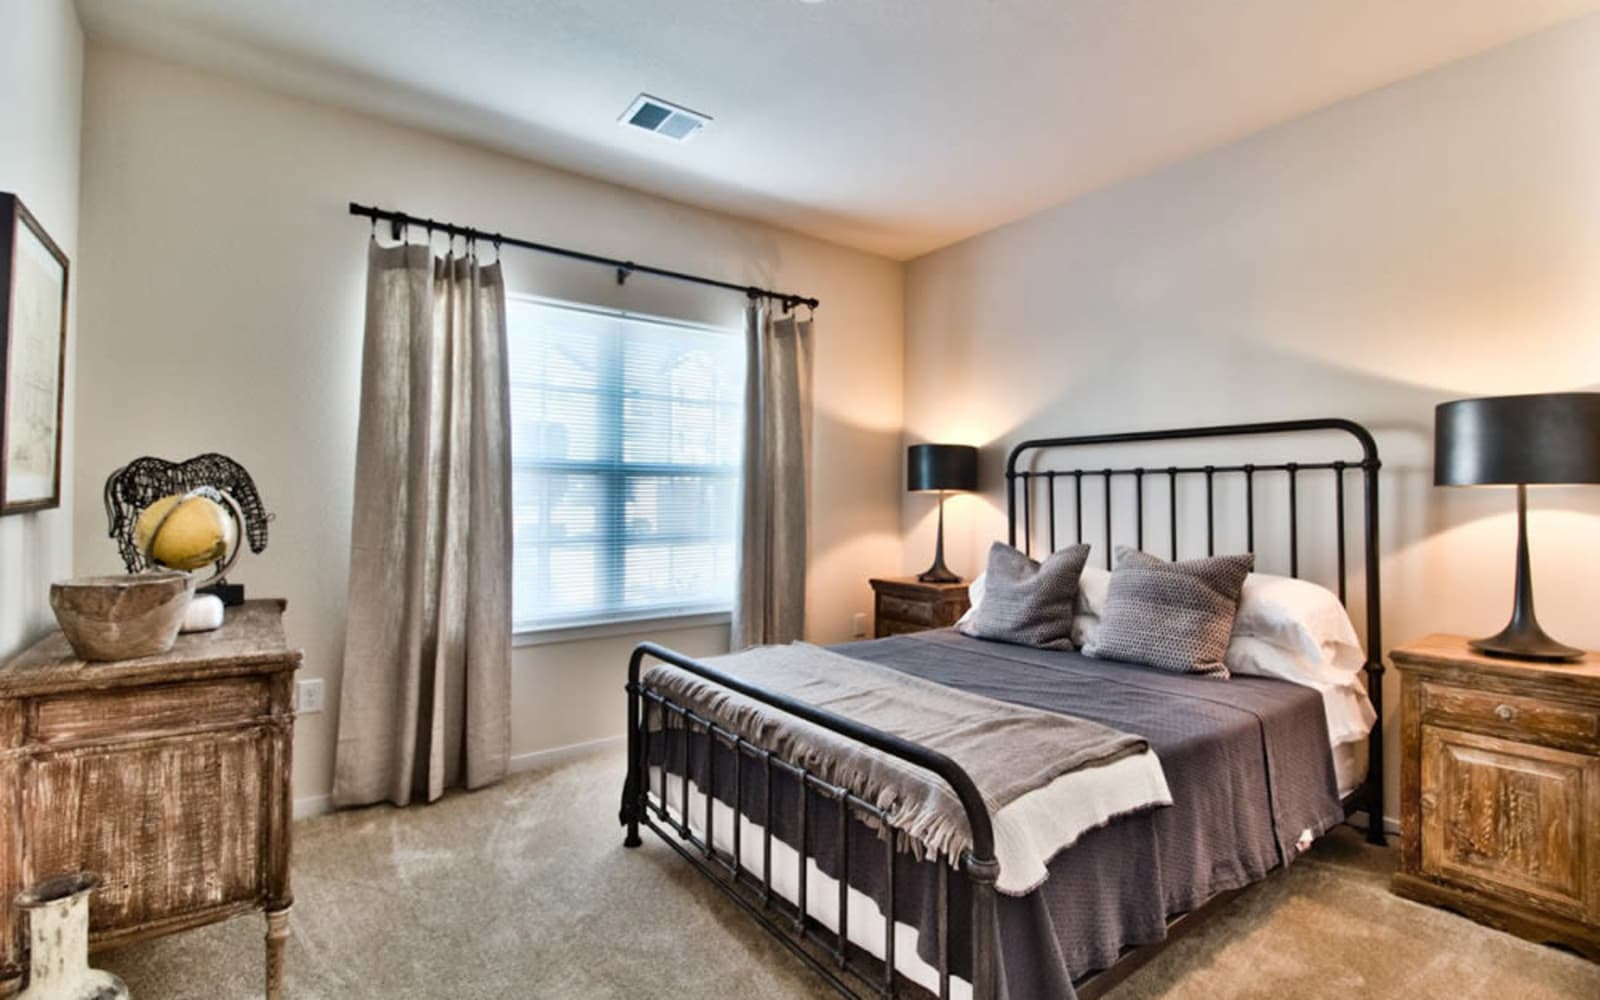 Bedrooms with natural light at Aventura at Mid Rivers in Saint Charles, Missouri.